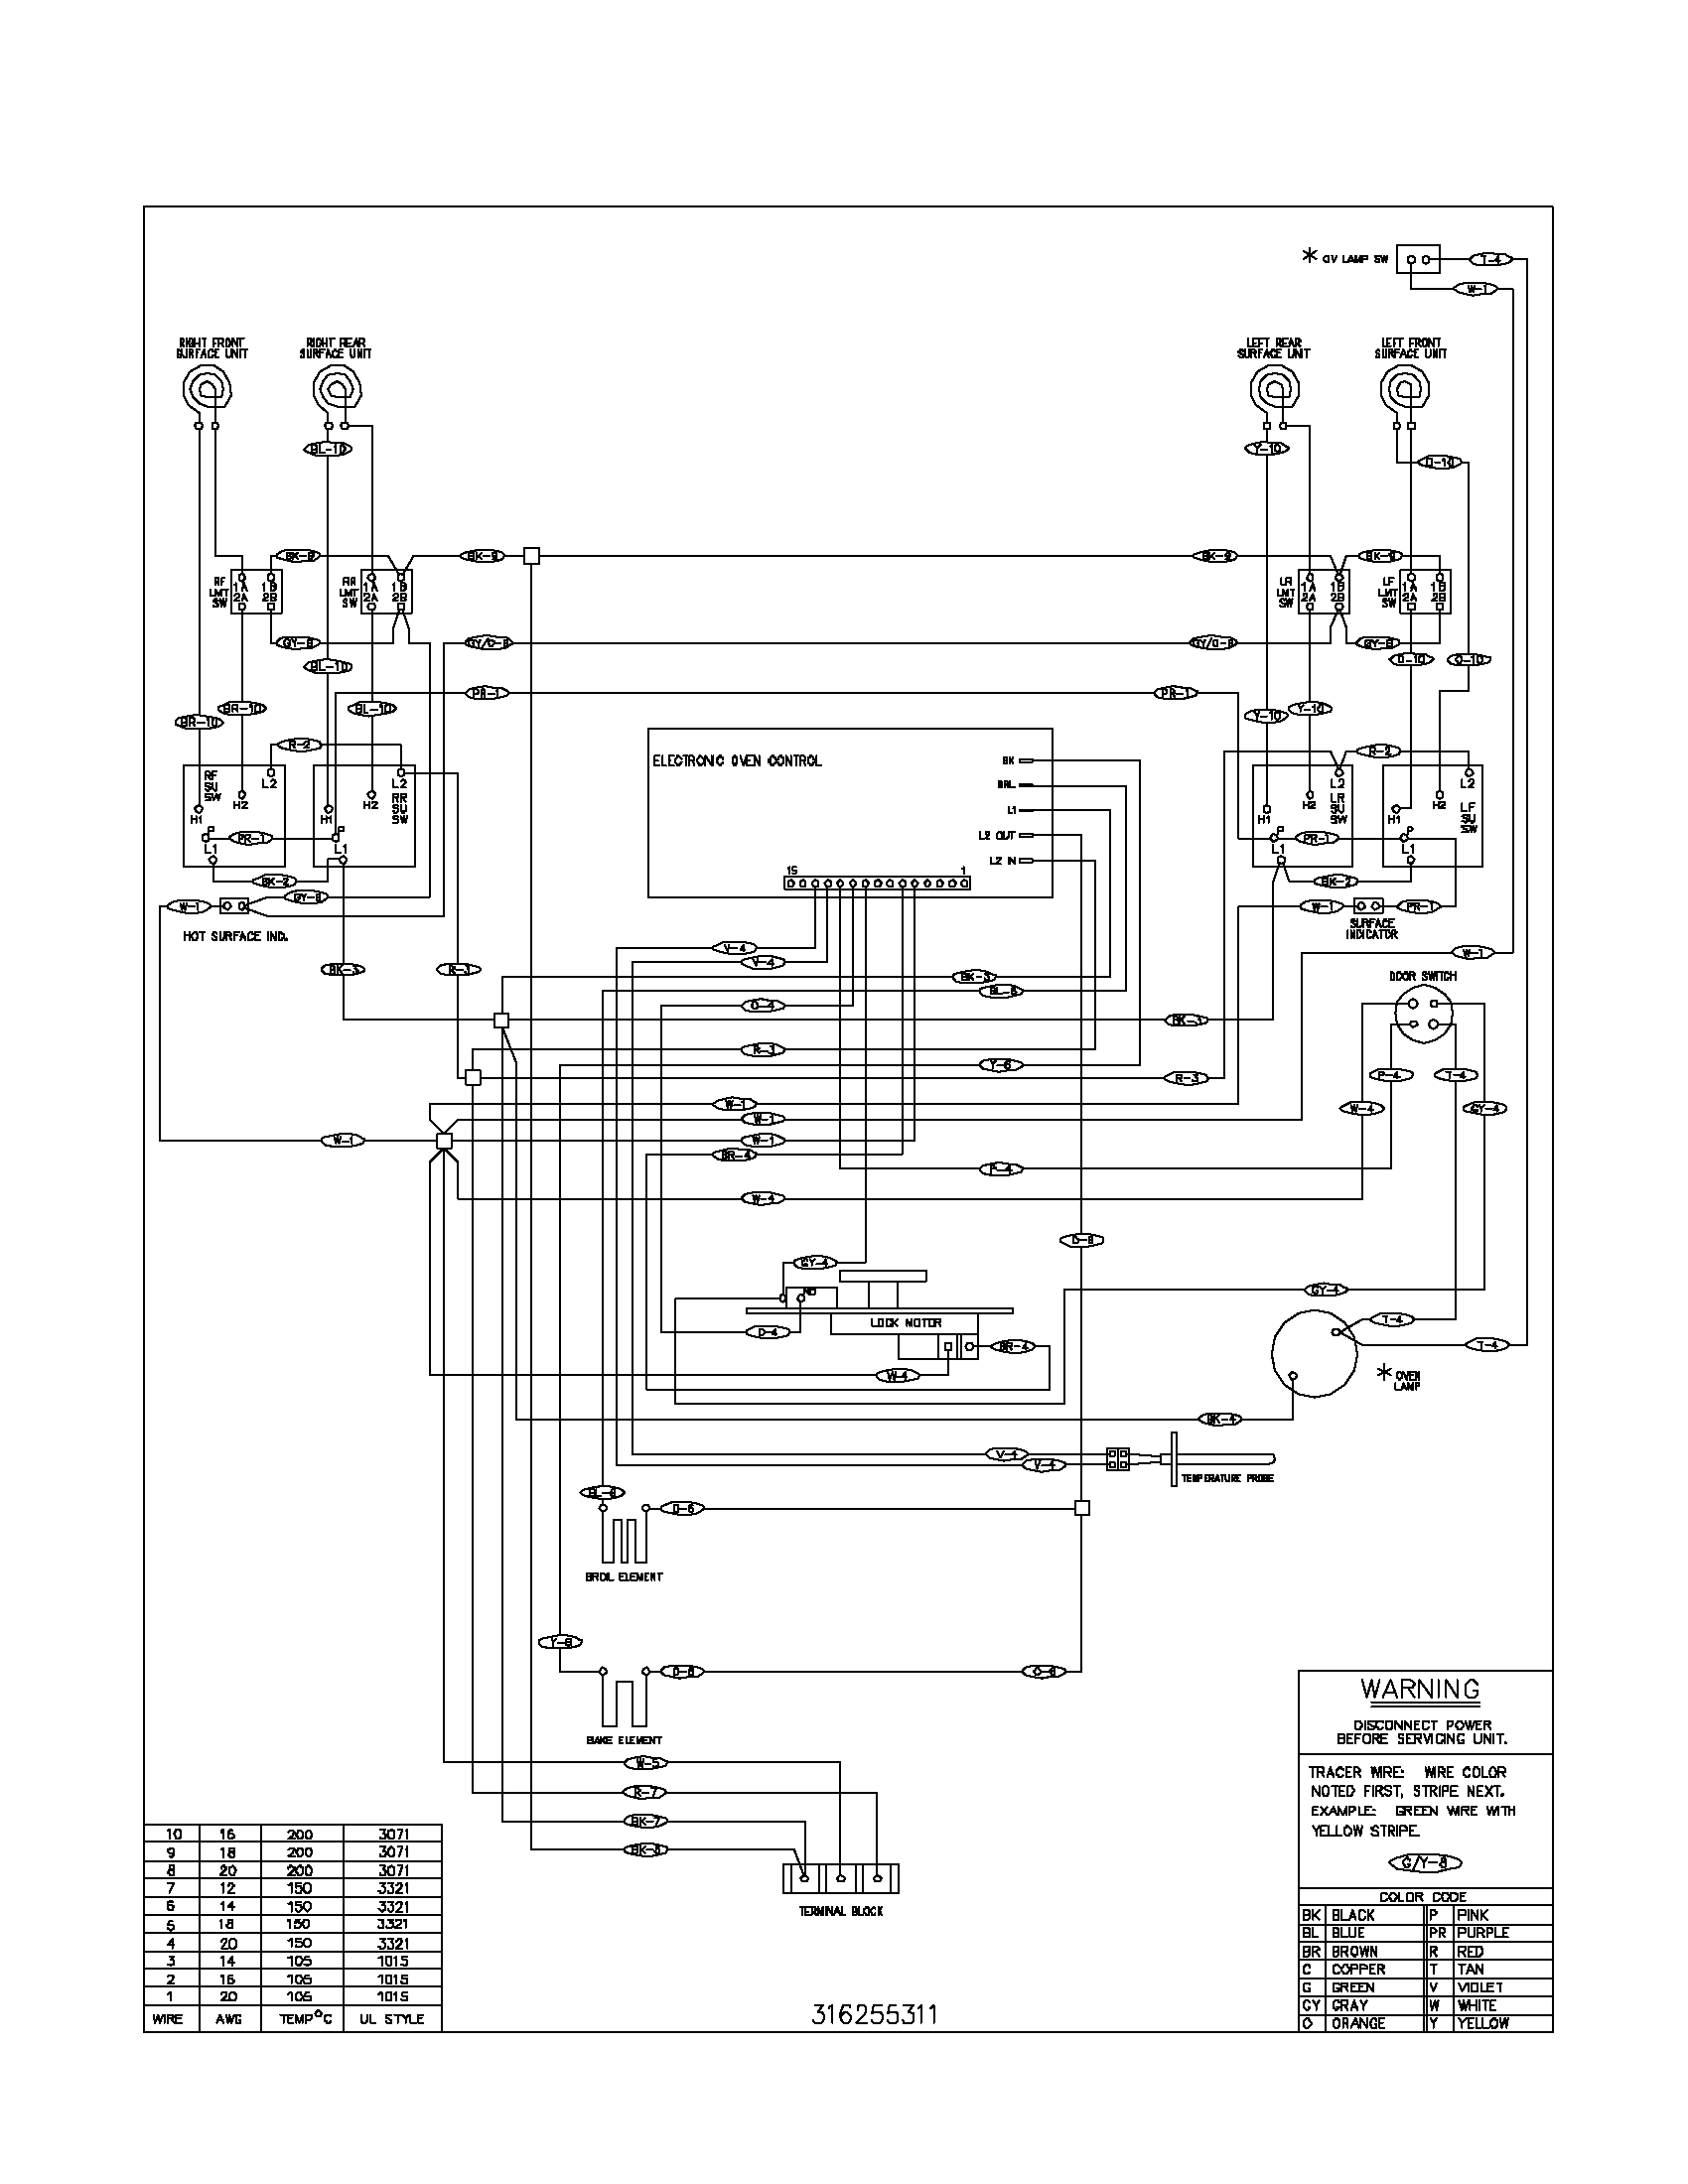 wiring diagram parts?resize\\\\\\\\\\\\\\\\\\\\\\\\\\\\\\\\\\\\\\\\\\\\\\\=665%2C861\\\\\\\\\\\\\\\\\\\\\\\\\\\\\\\\\\\\\\\\\\\\\\\&ssl\\\\\\\\\\\\\\\\\\\\\\\\\\\\\\\\\\\\\\\\\\\\\\\=1 rdx 755dz wiring diagram,dz \u2022 edmiracle co  at eliteediting.co